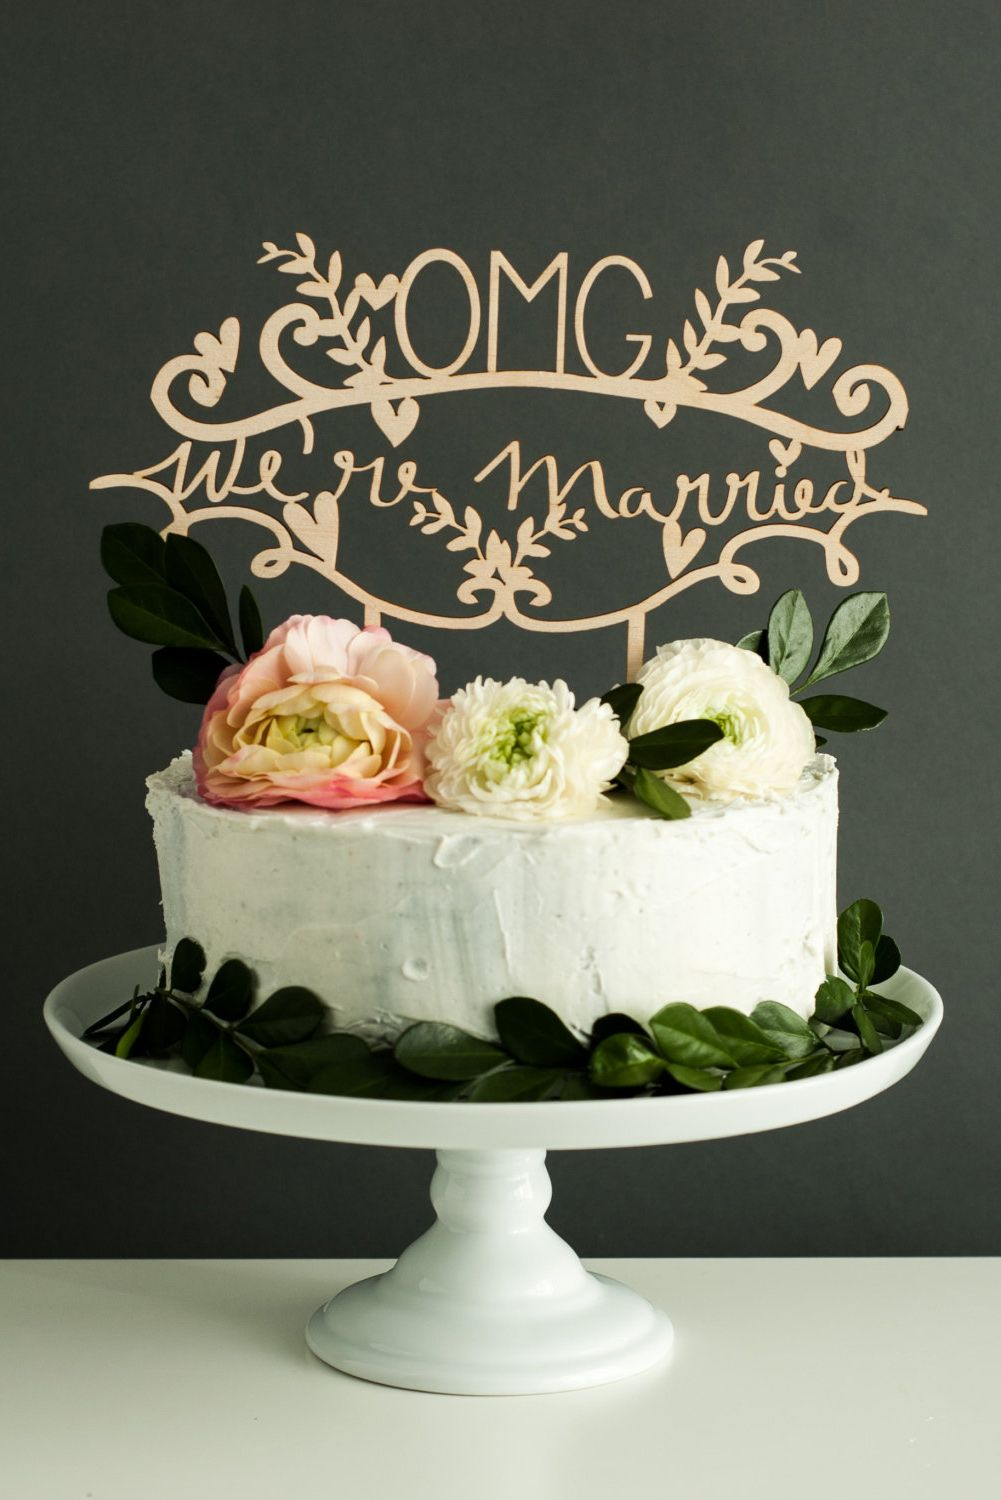 Top the cake with a little truth-talking typography